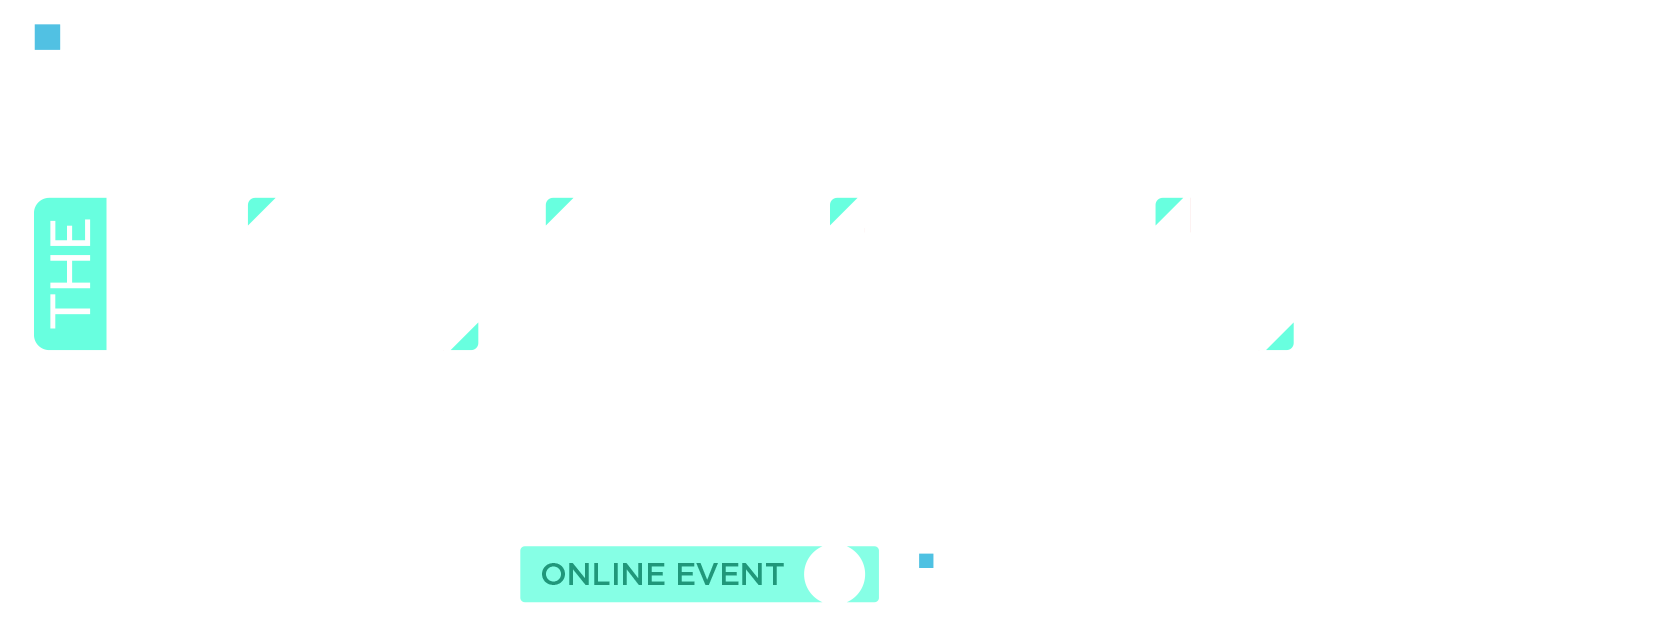 The Future City: The Core of the Green and Digital Transitions in Europe